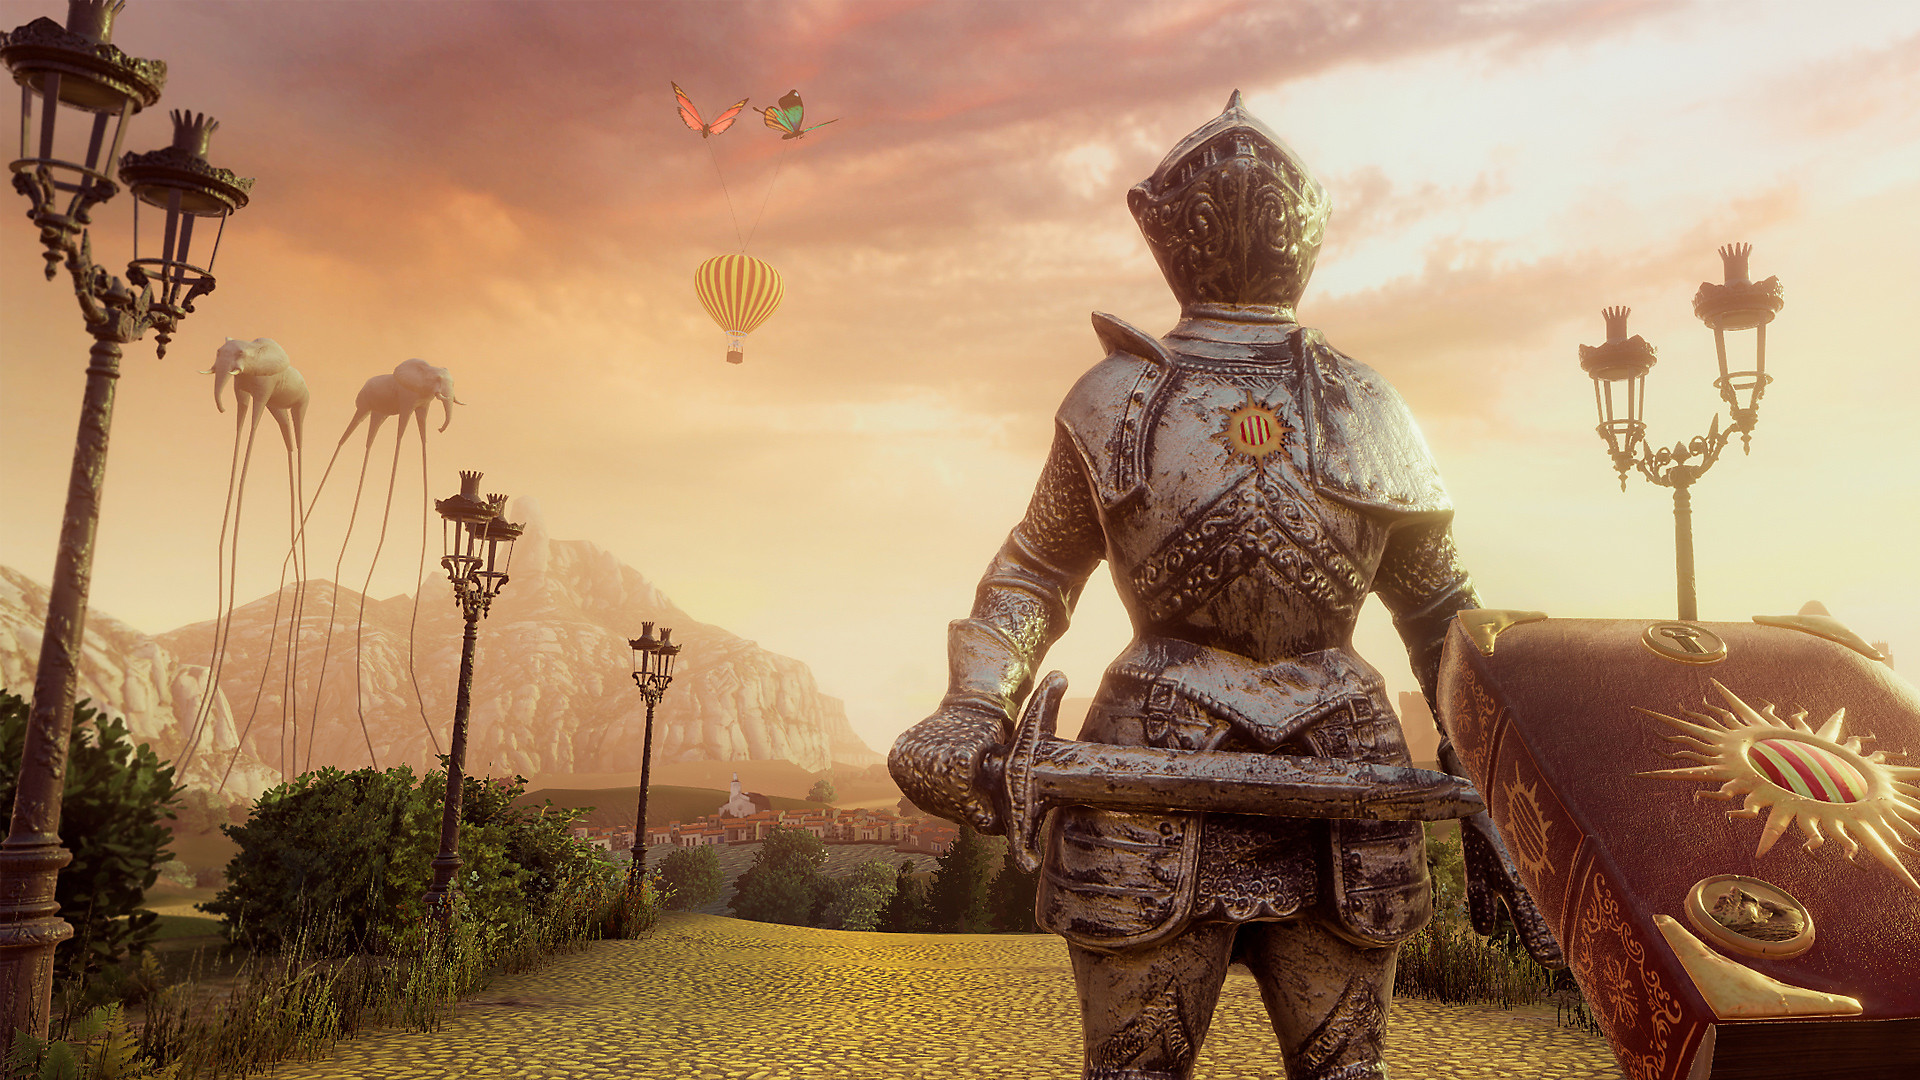 A knight statue, with a hot air balloon held by butterflies in the background, as well as elephants with legs as long as mountains